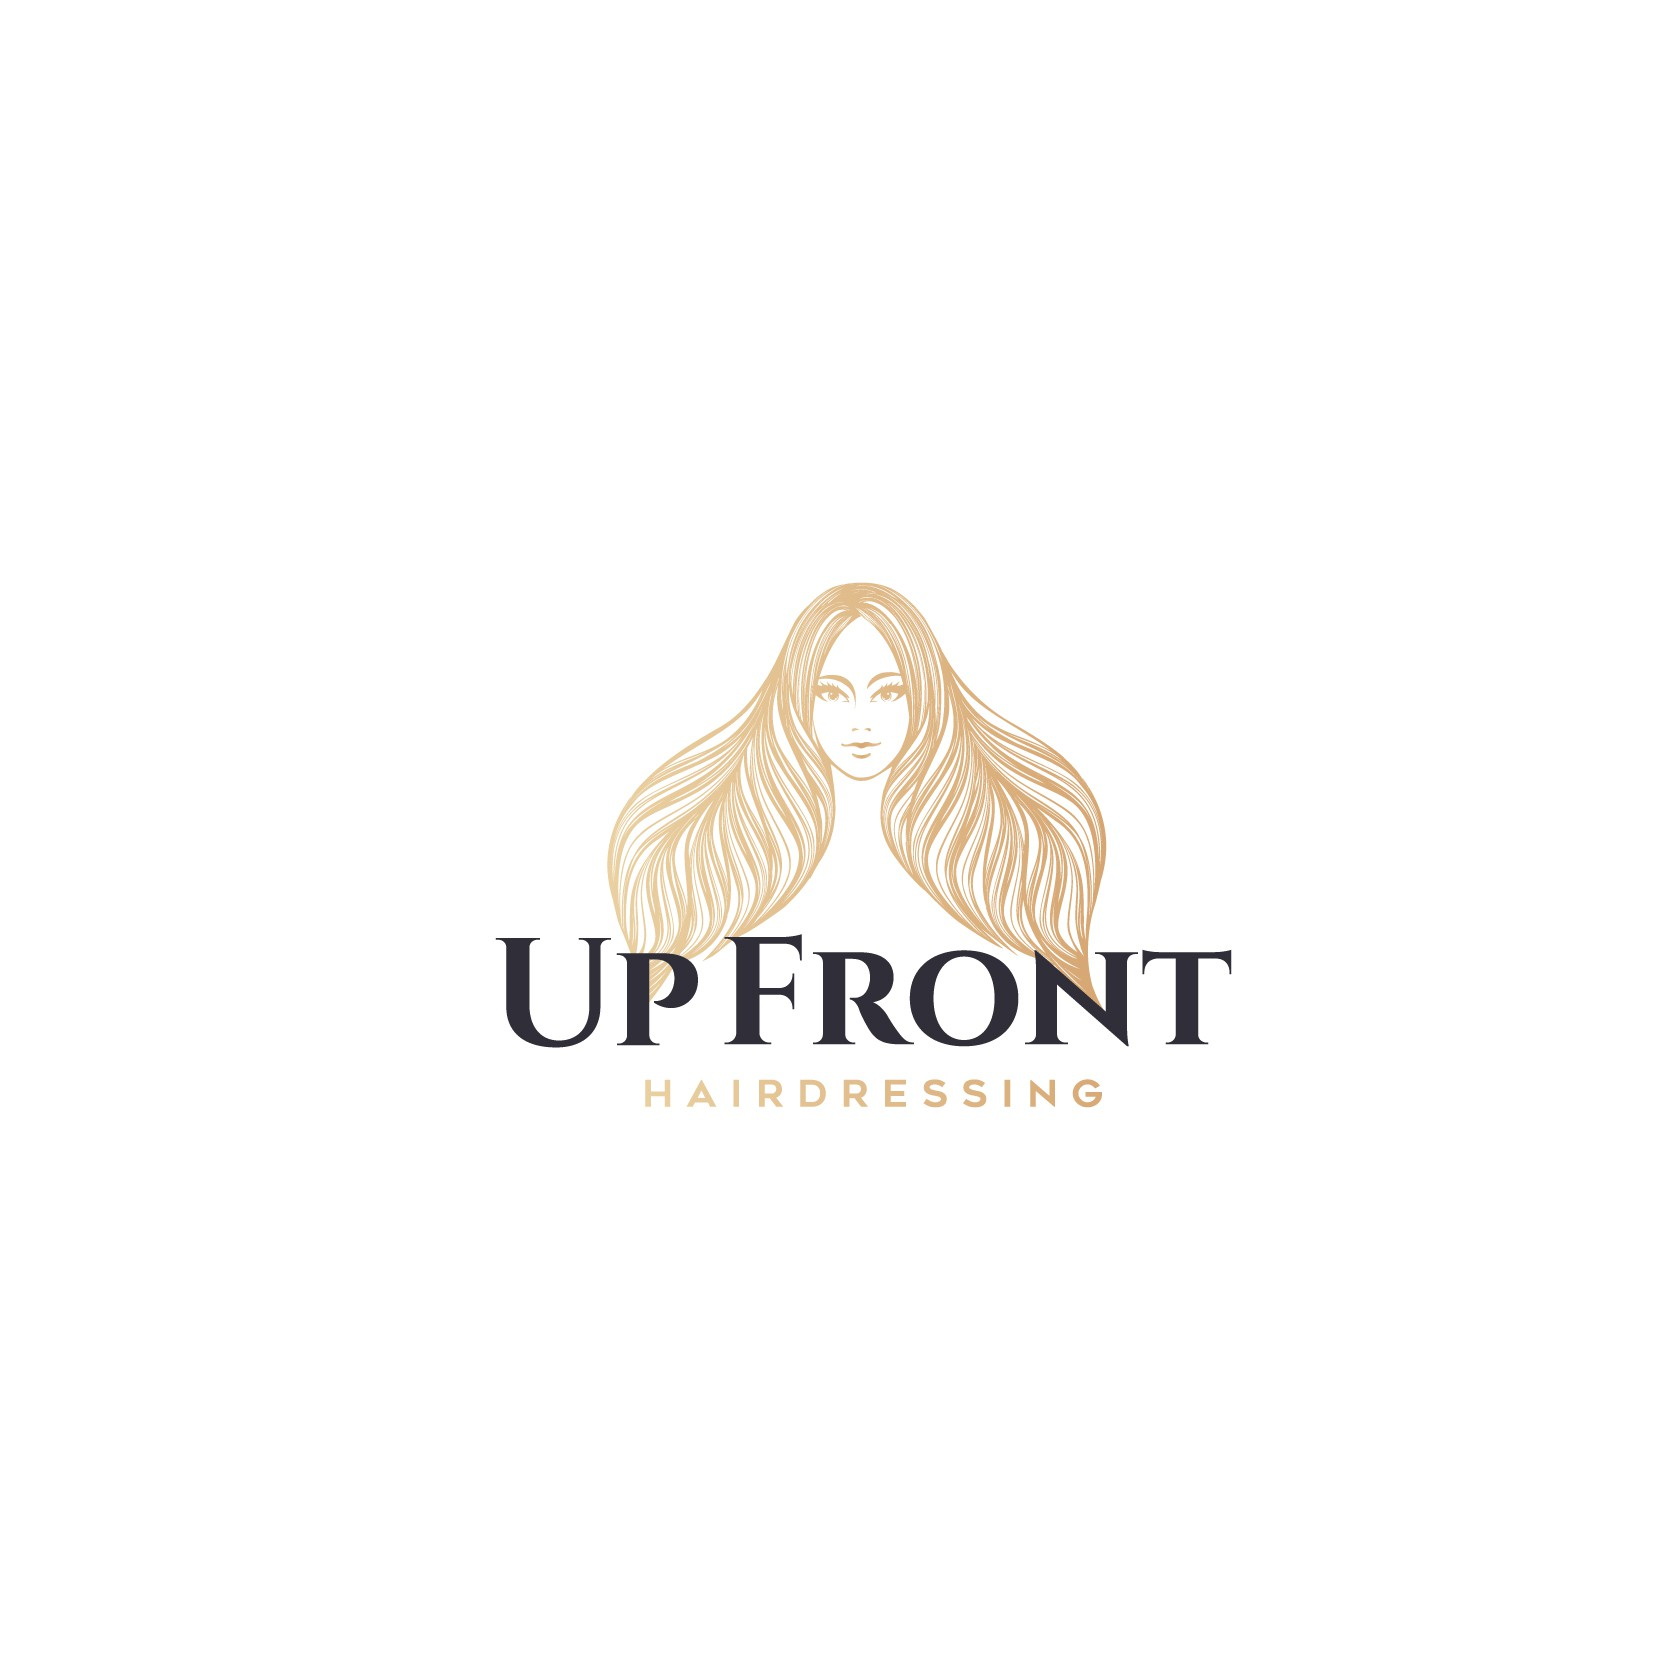 Up Front Hair Salon needs a logo to attract a classy, trendy clientele